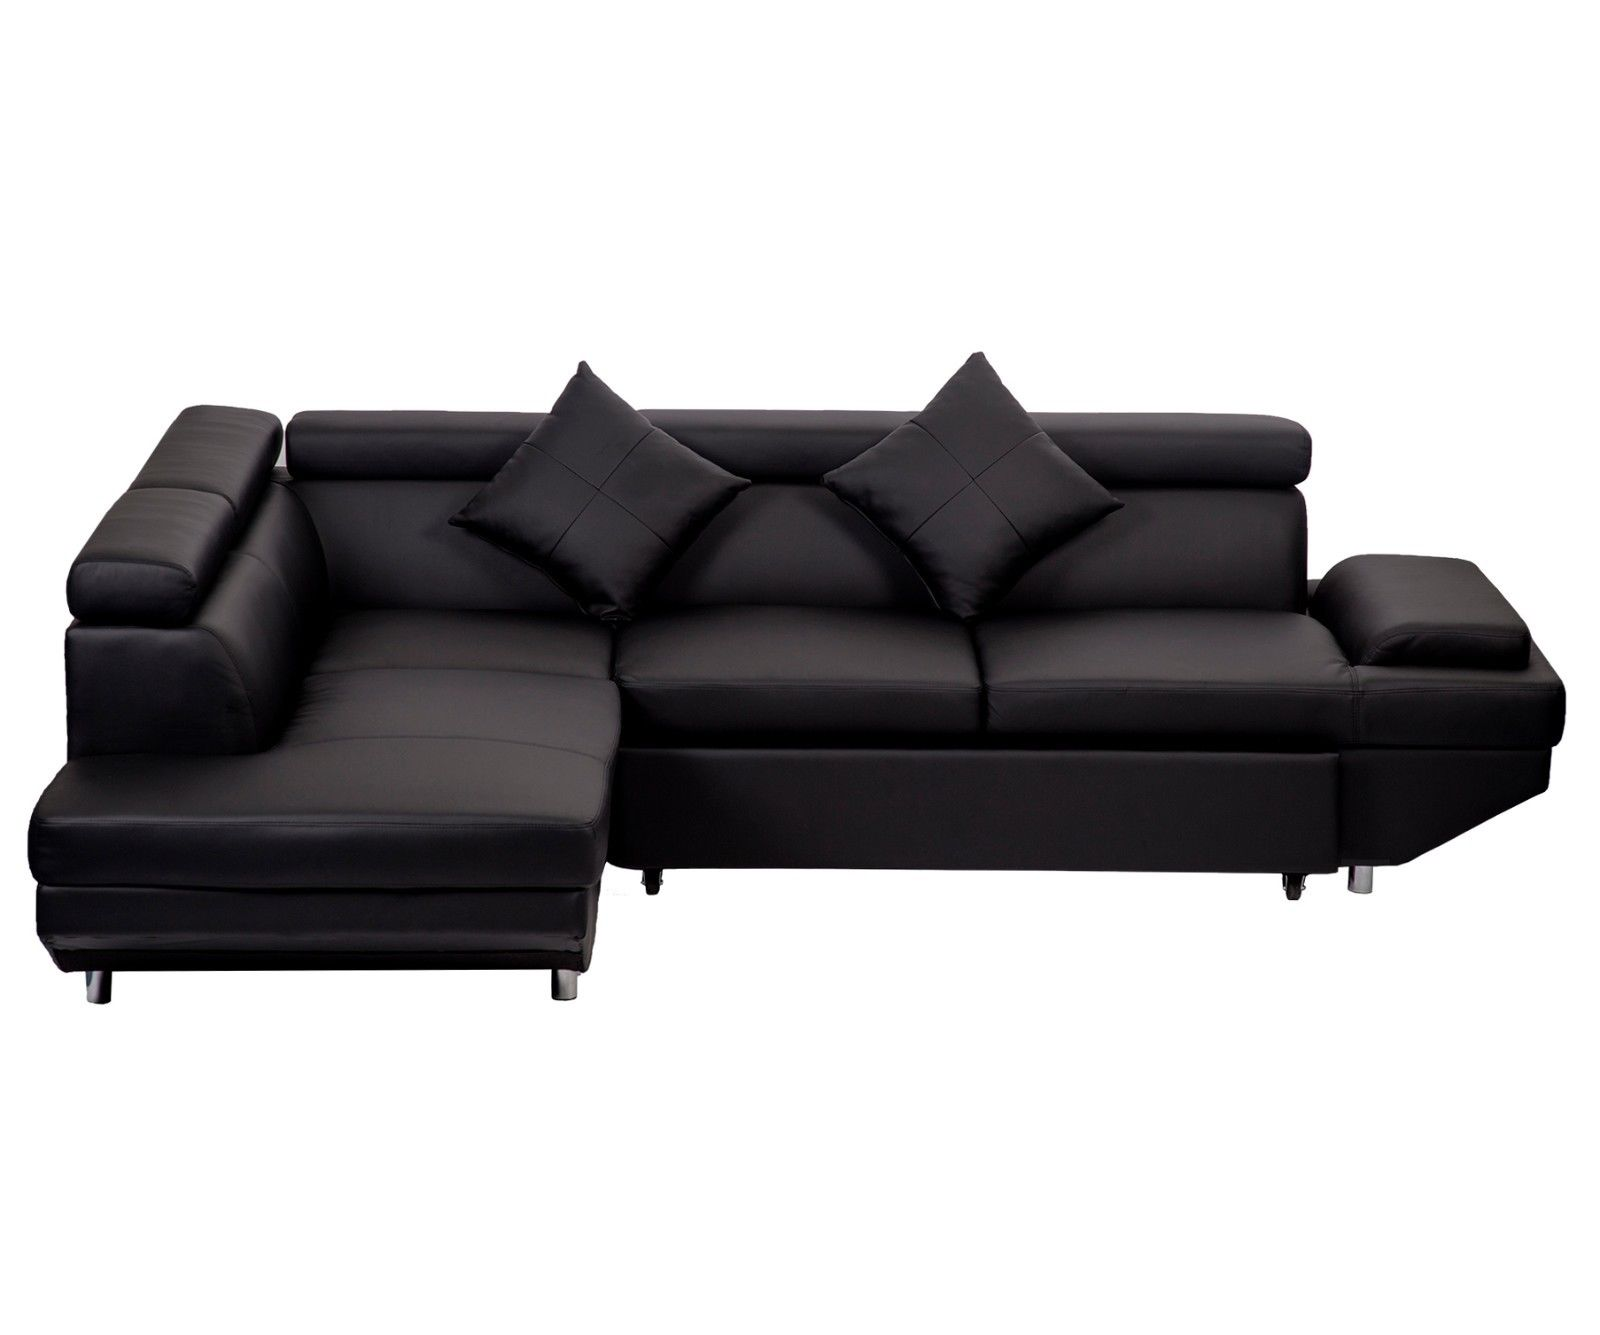 New Modern Contemporary Leather Sectional Corner Sofa Bed